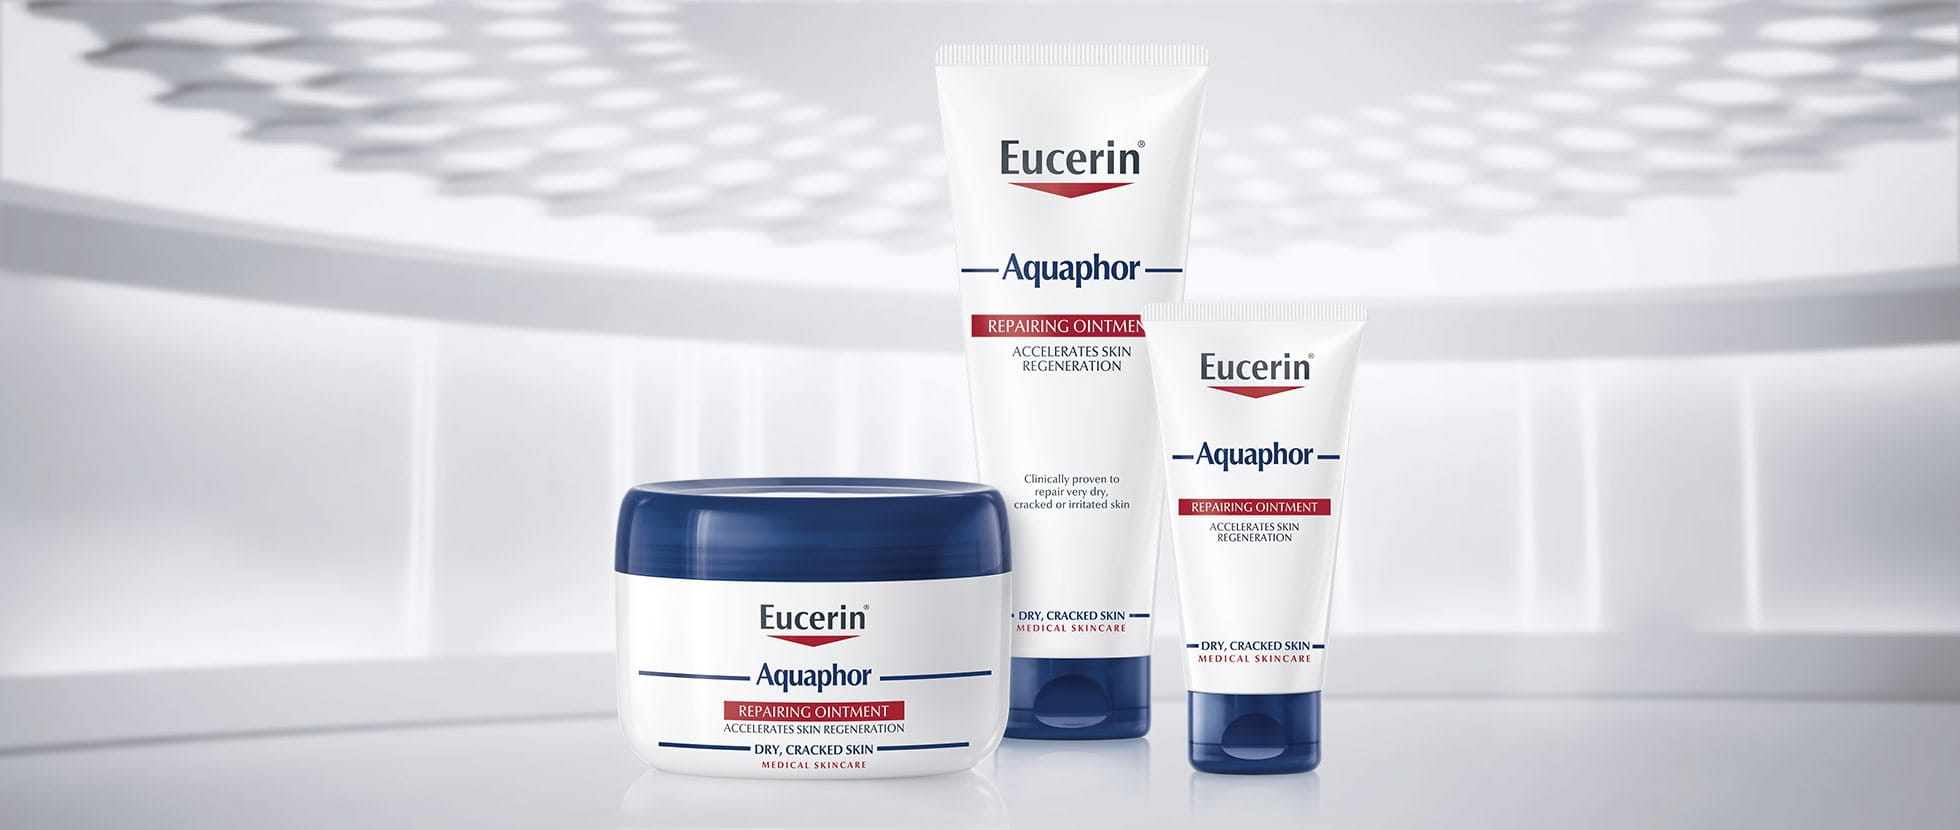 Our research | Behind the science of Aquaphor| Eucerin